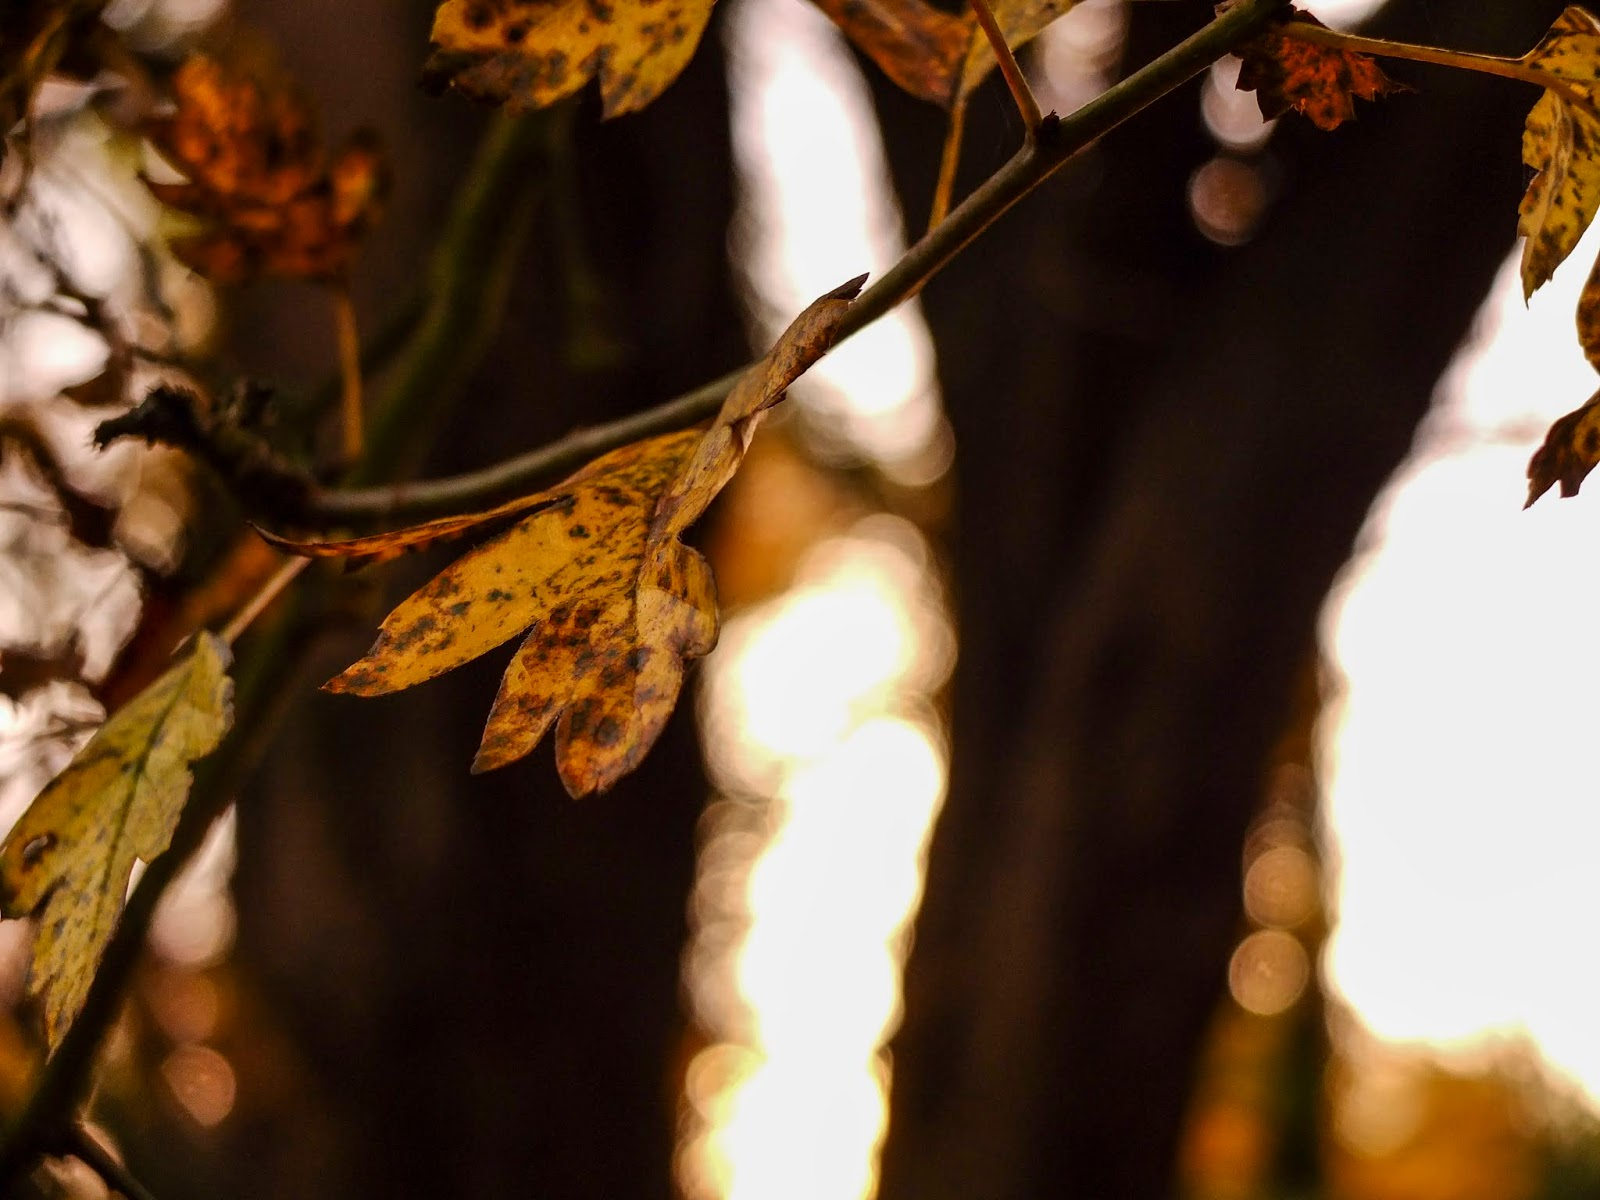 Autumn leaves on tree branches at sunset in North Cork.